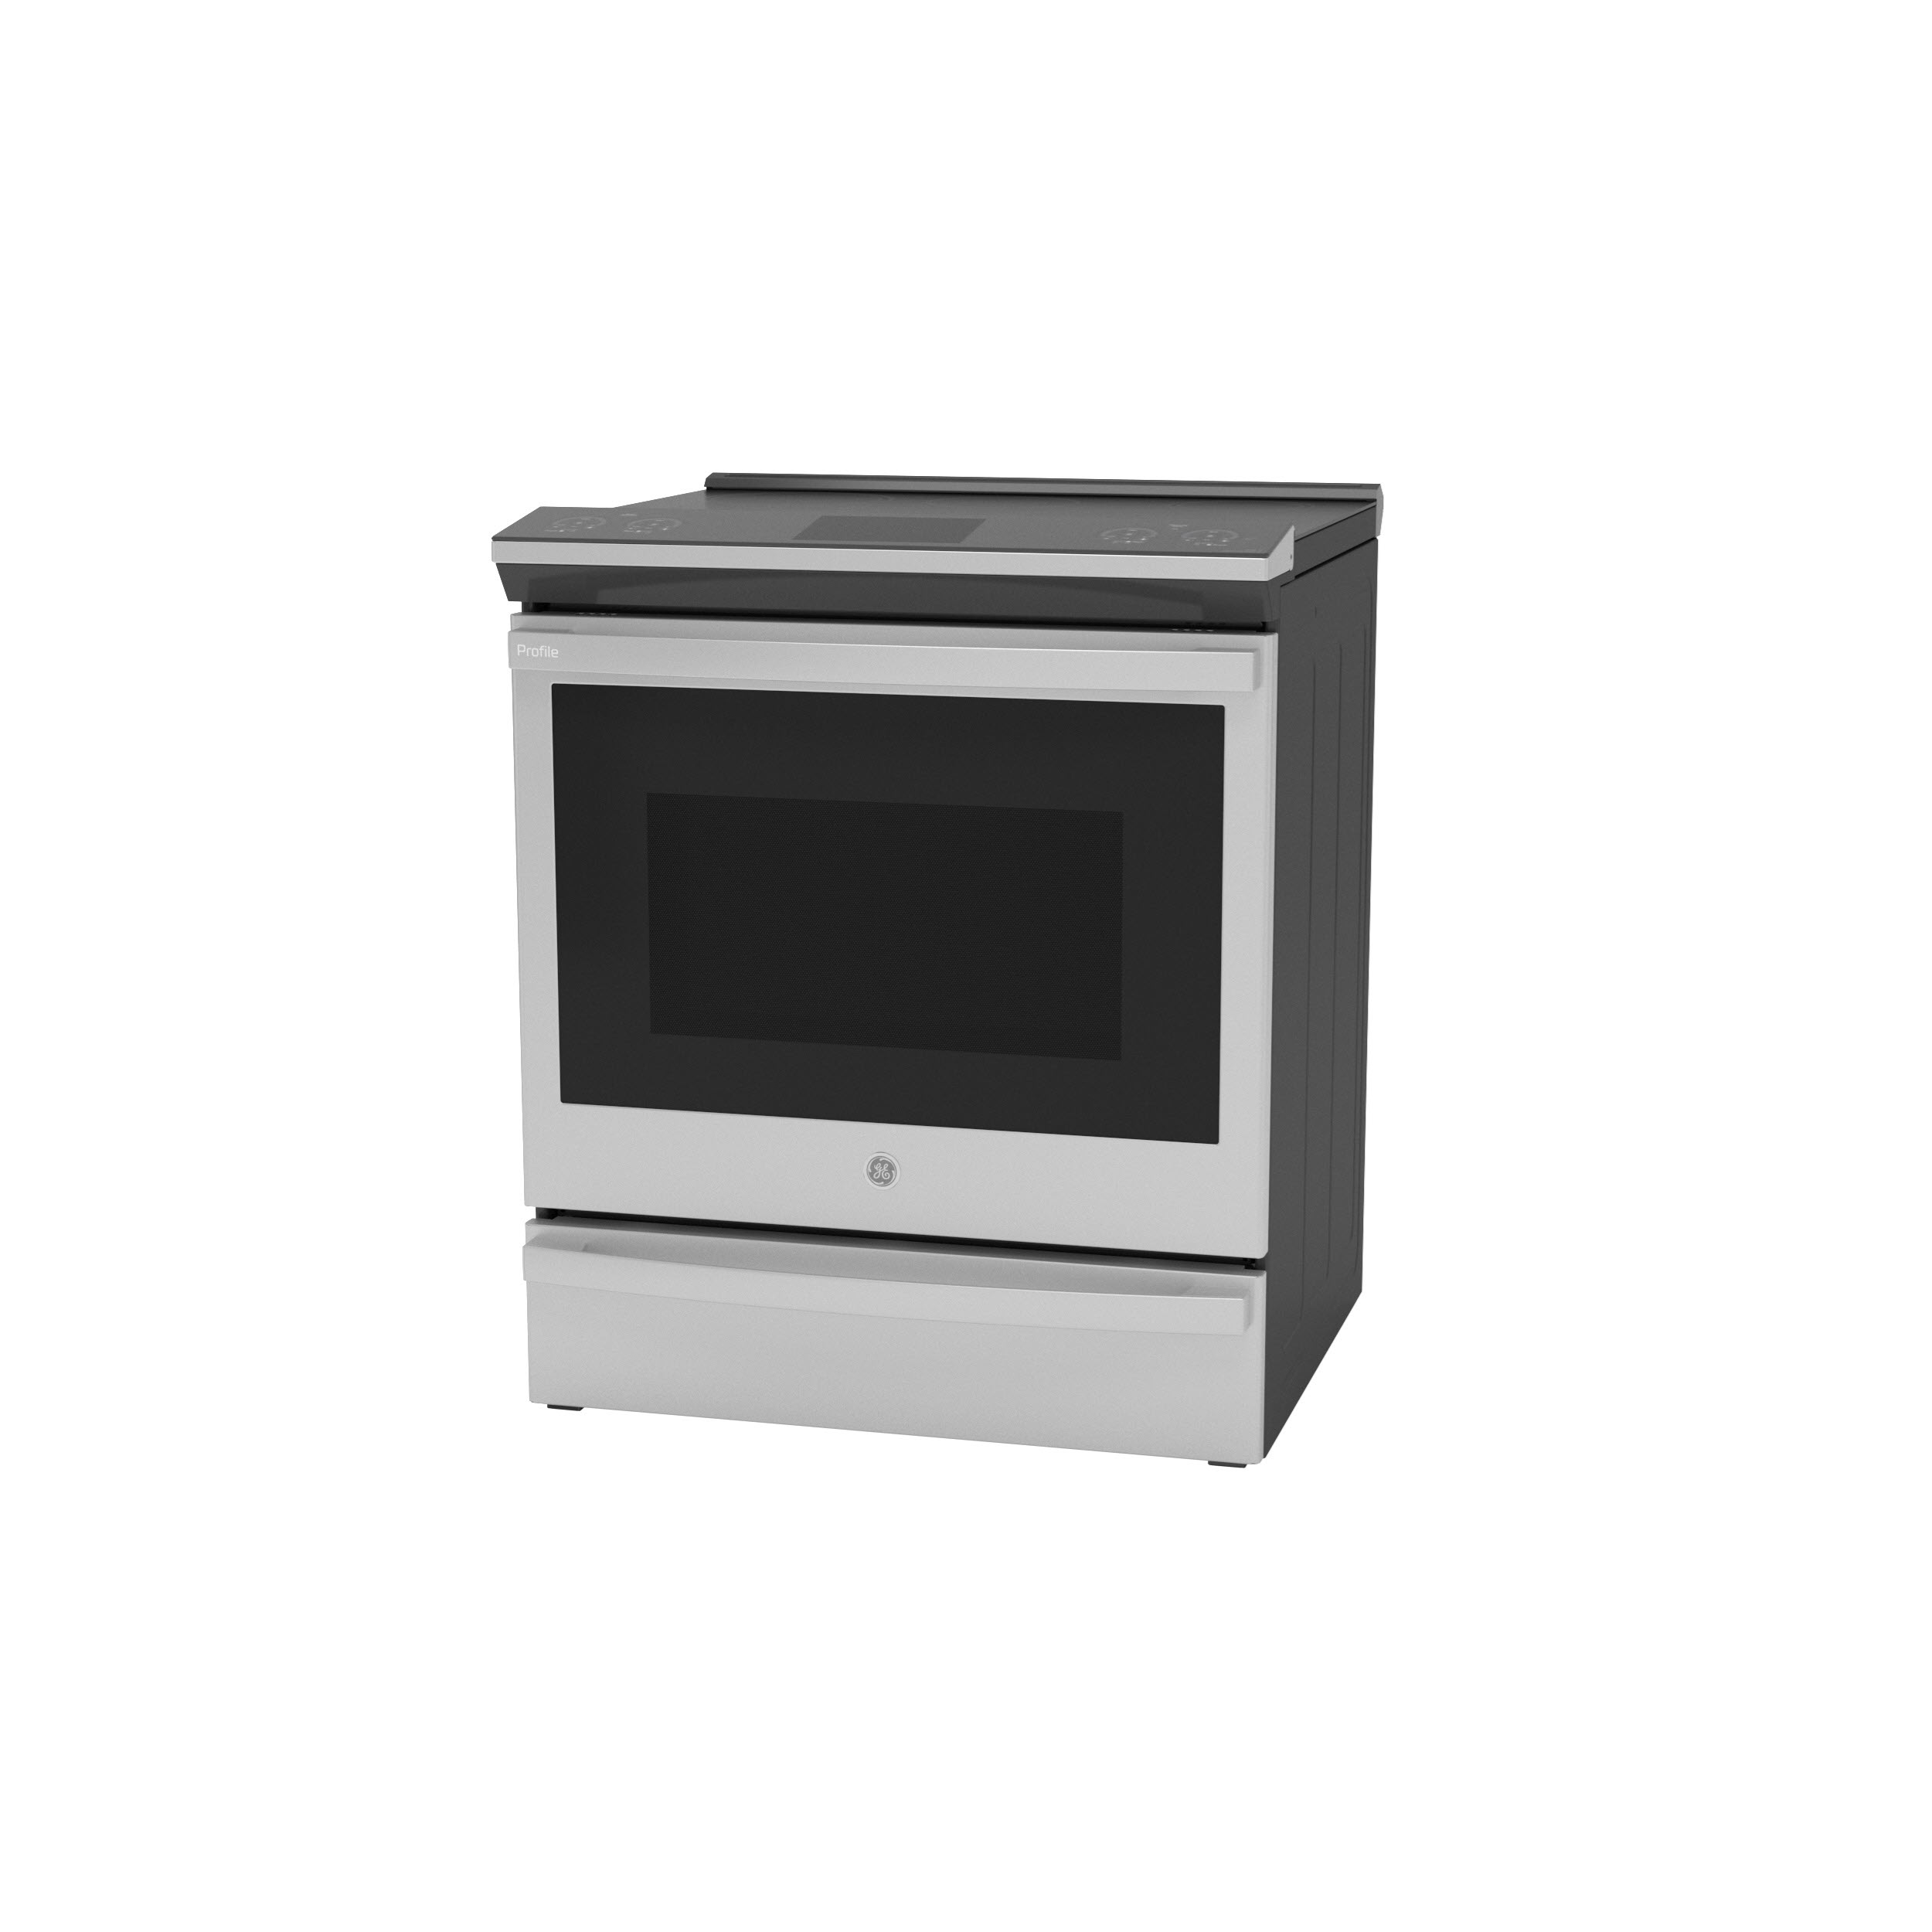 "Model: PHS93XYPFS | GE Profile GE Profile™ 30"" Smart Slide-In Front-Control Induction Fingerprint Resistant Range with In Oven Camera"